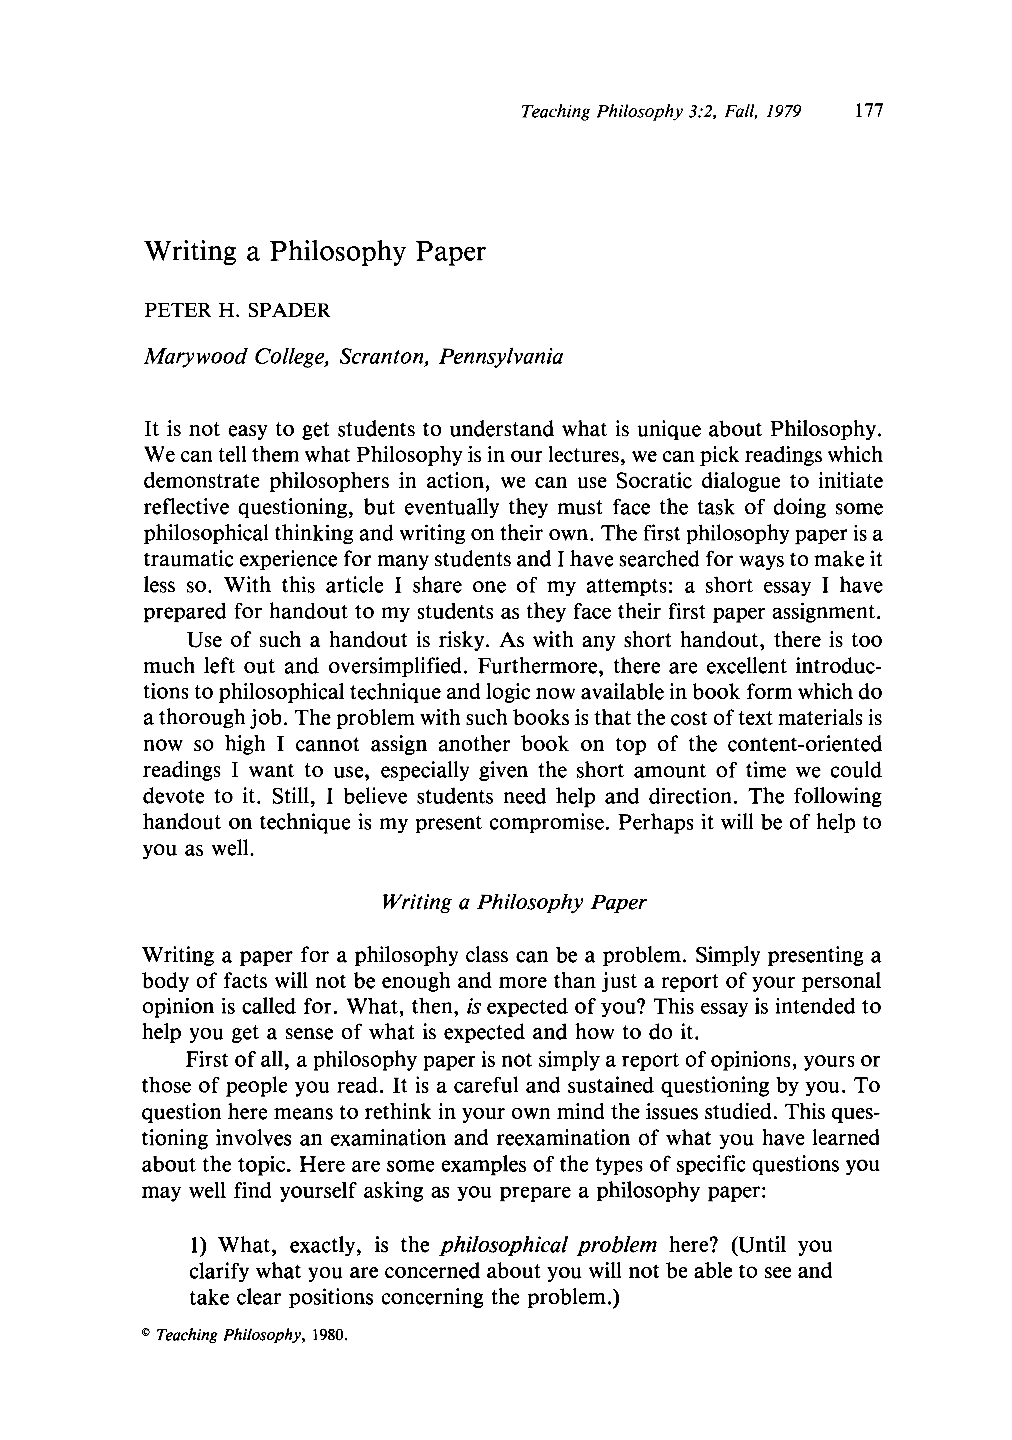 custom philosophy essays essay about philosophy creation versus evolution essay essay on philosophy custom writing services coupon code pdf